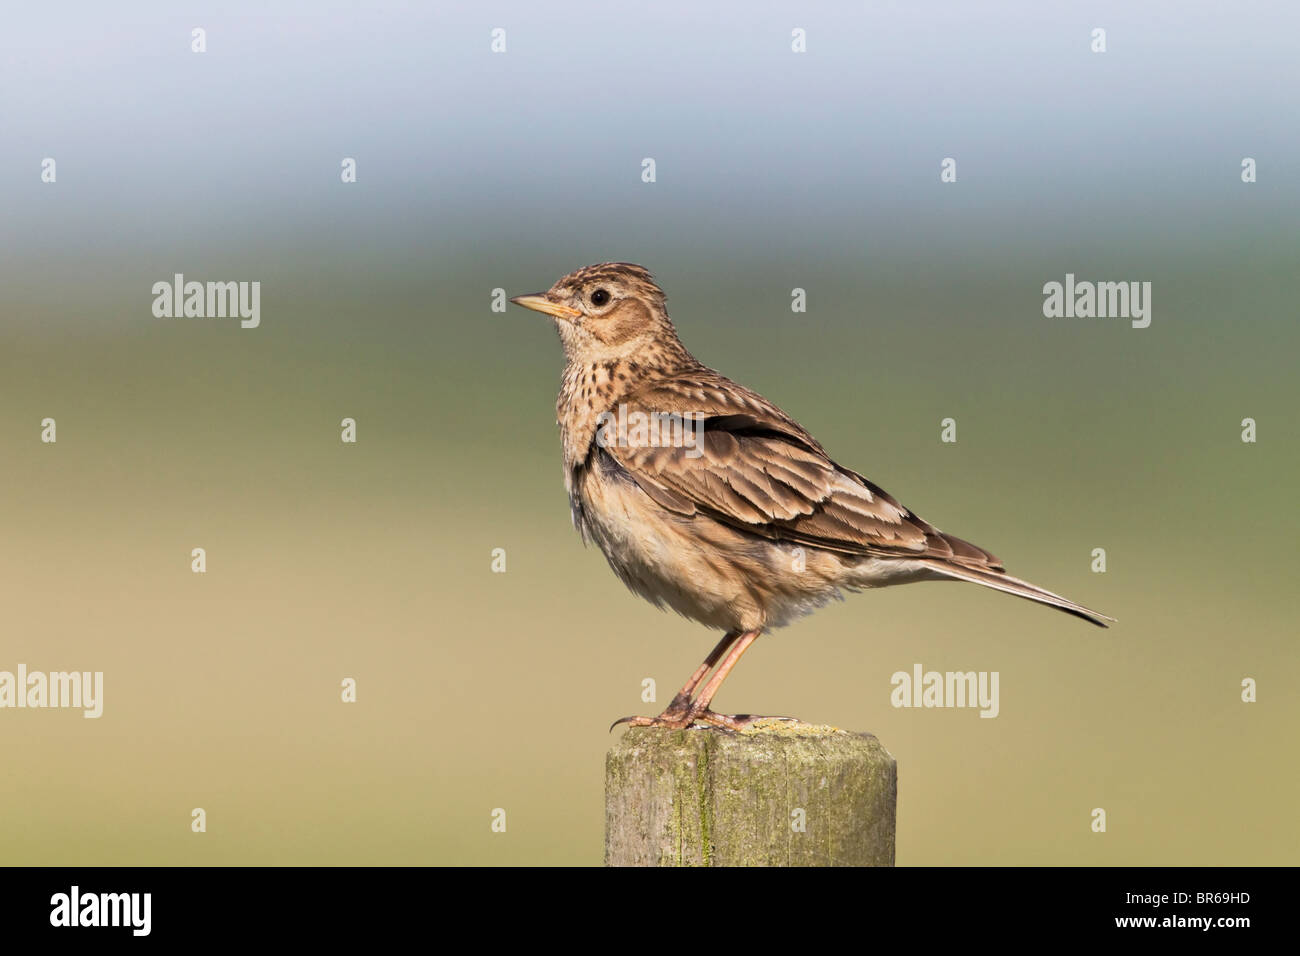 An adult Skylark perched on fence post - Stock Image